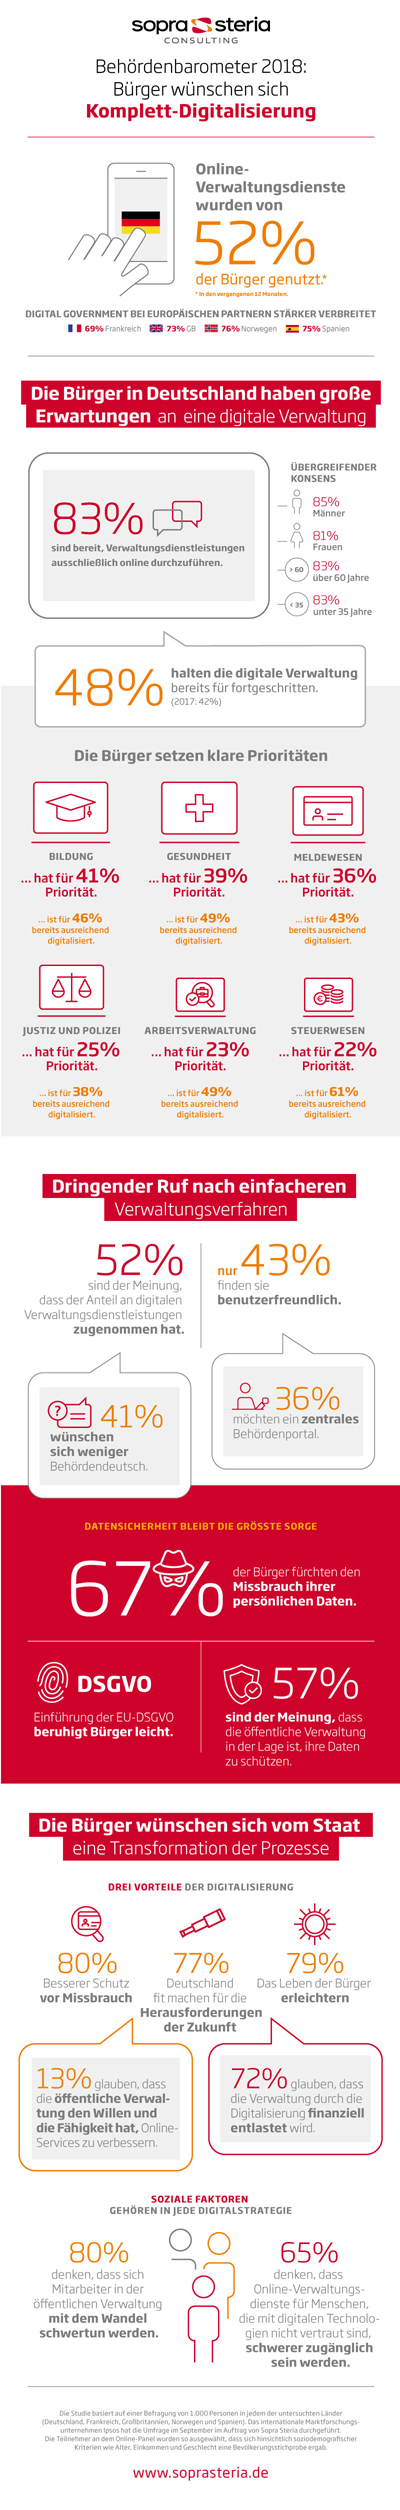 Infografik Digital Government Barometer 2018_400px